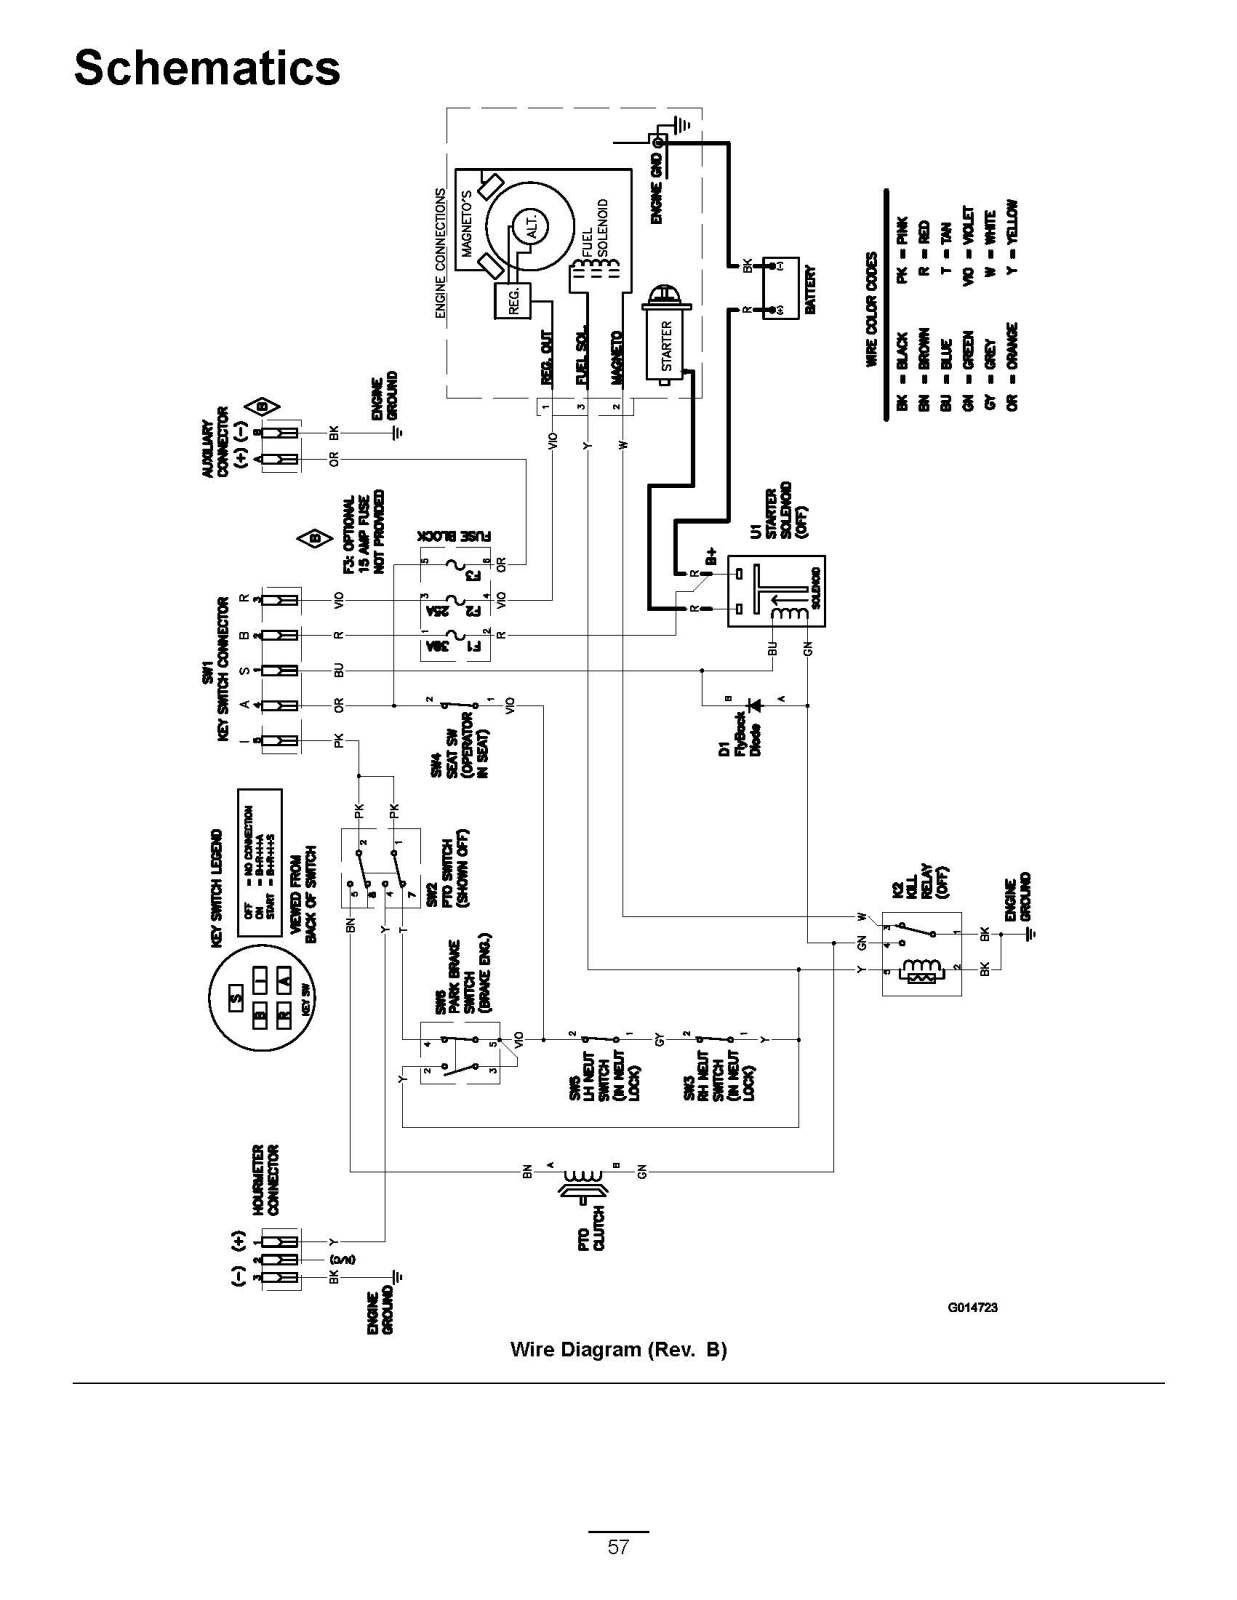 Toro Wheel Horse 310 8 Wiring Diagram Online Small Engine Library 3150